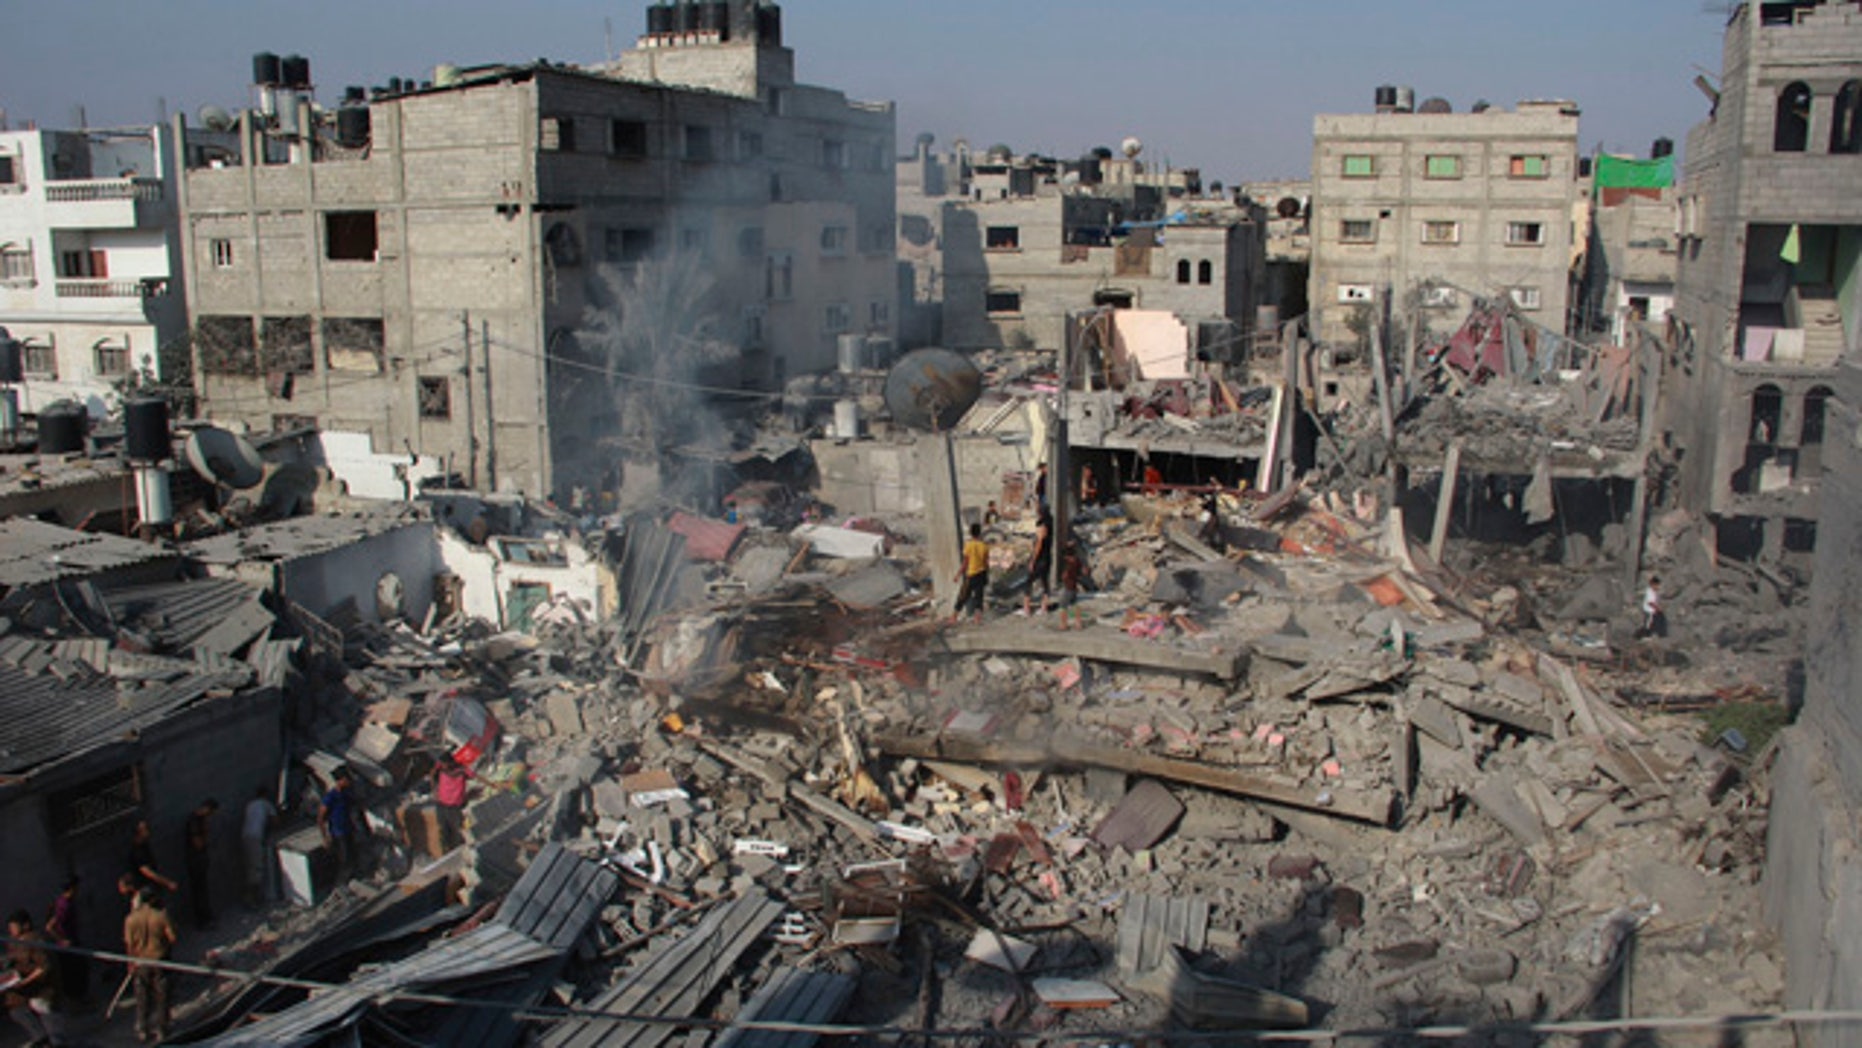 FILE - In this Saturday, Aug. 2, 2014 file photo, Palestinians stand on the rubble of houses destroyed in an Israeli strike in Rafah, southern Gaza Strip.  (AP Photo/Hatem Ali, File)